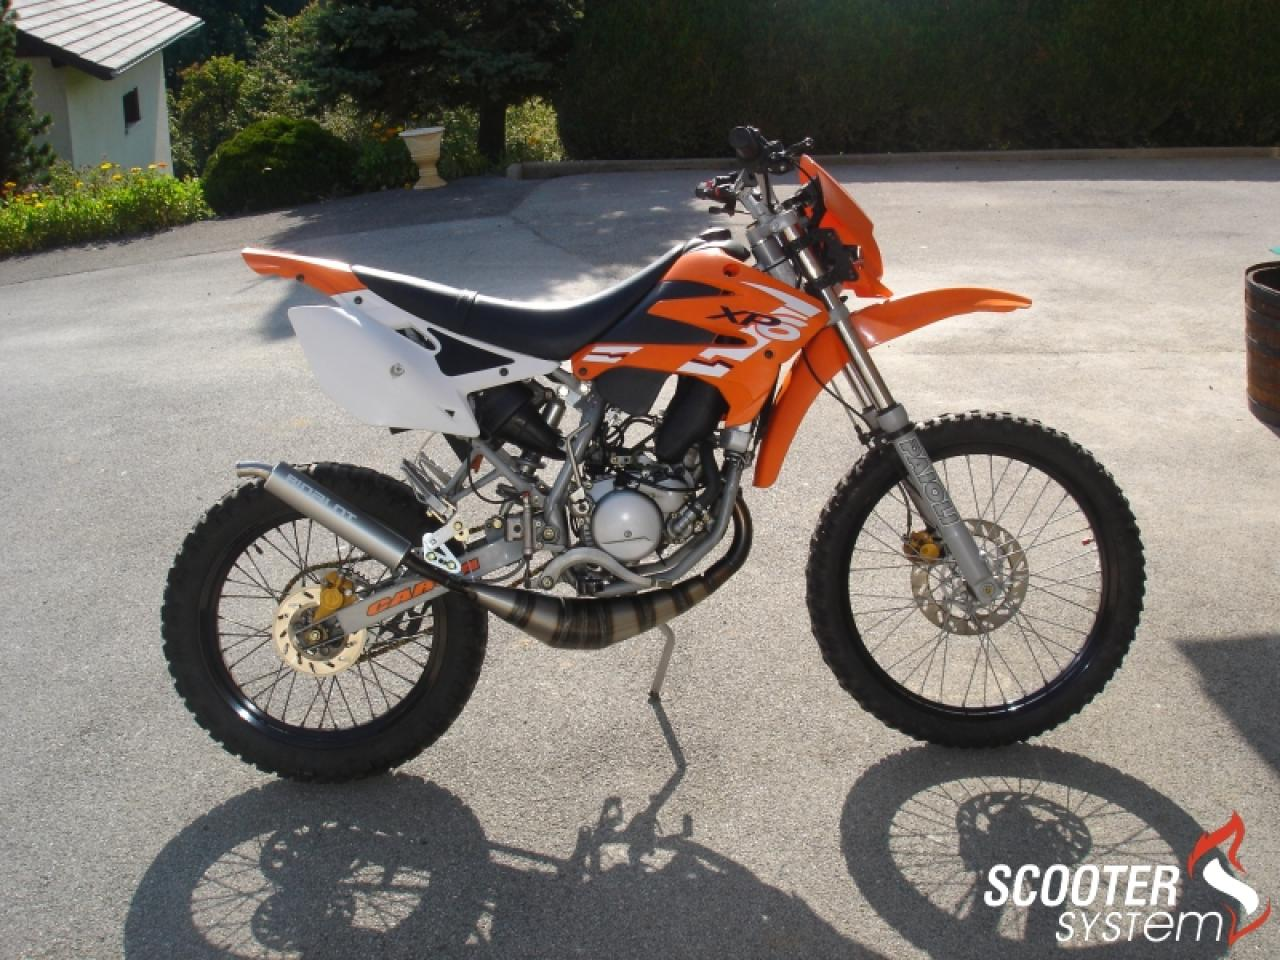 Peugeot XP6 50 Supermotard 2006 images #120127